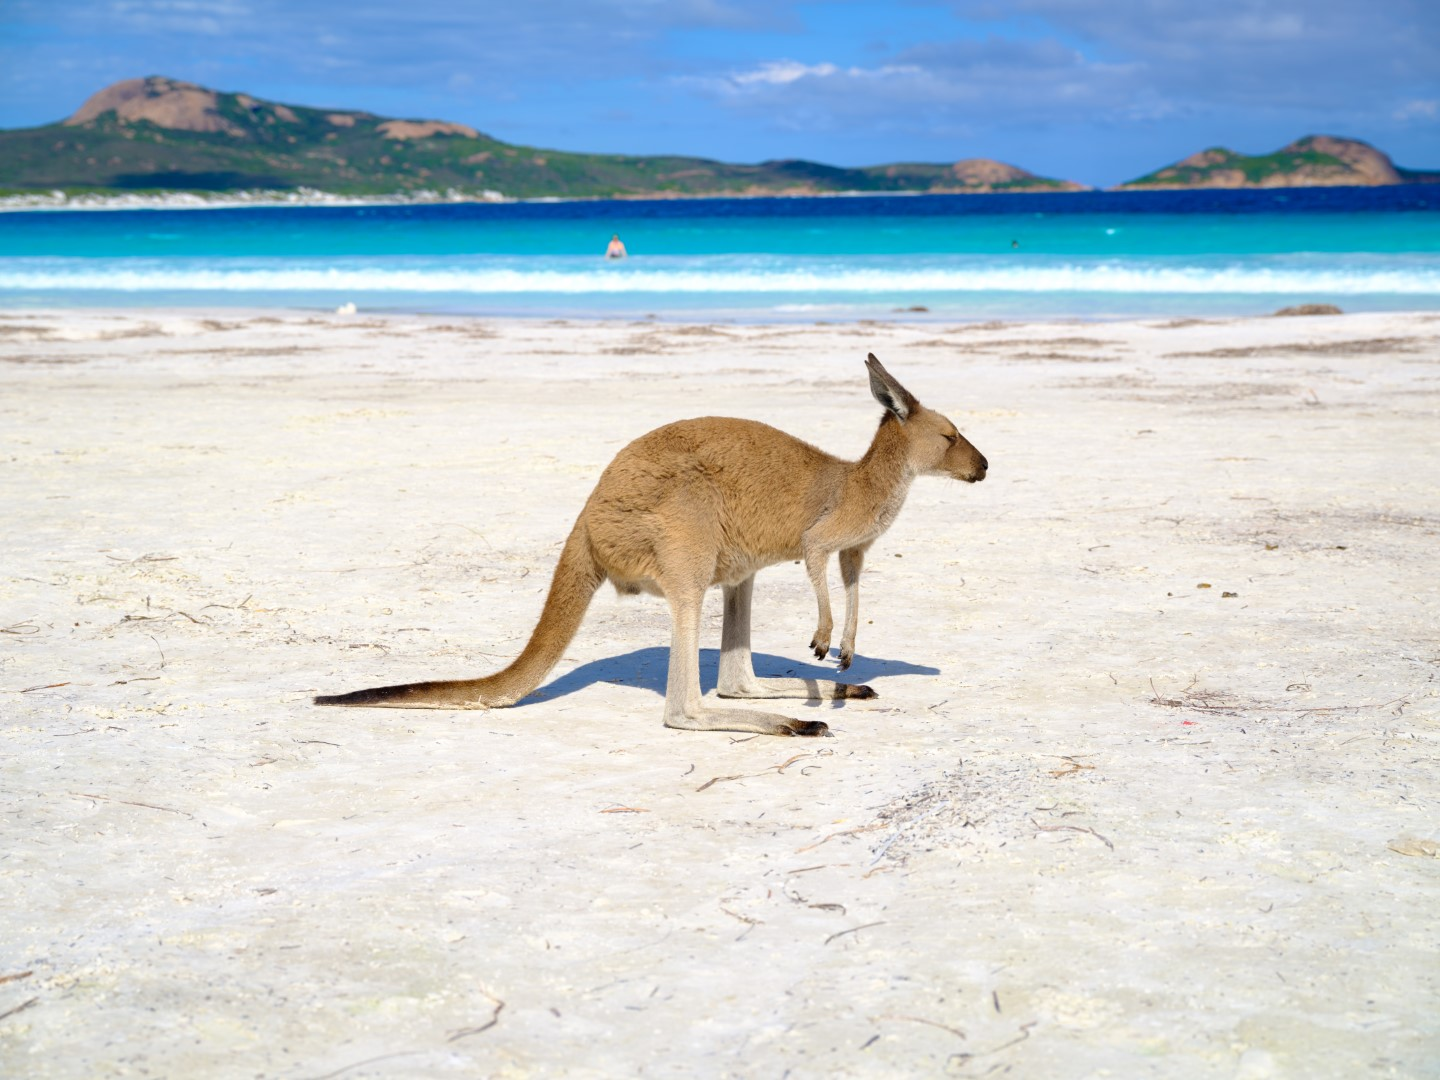 Kangaroo at Lucky Bay, Cape Le Grand National Park. Photo Credit: Tourism Western Australia